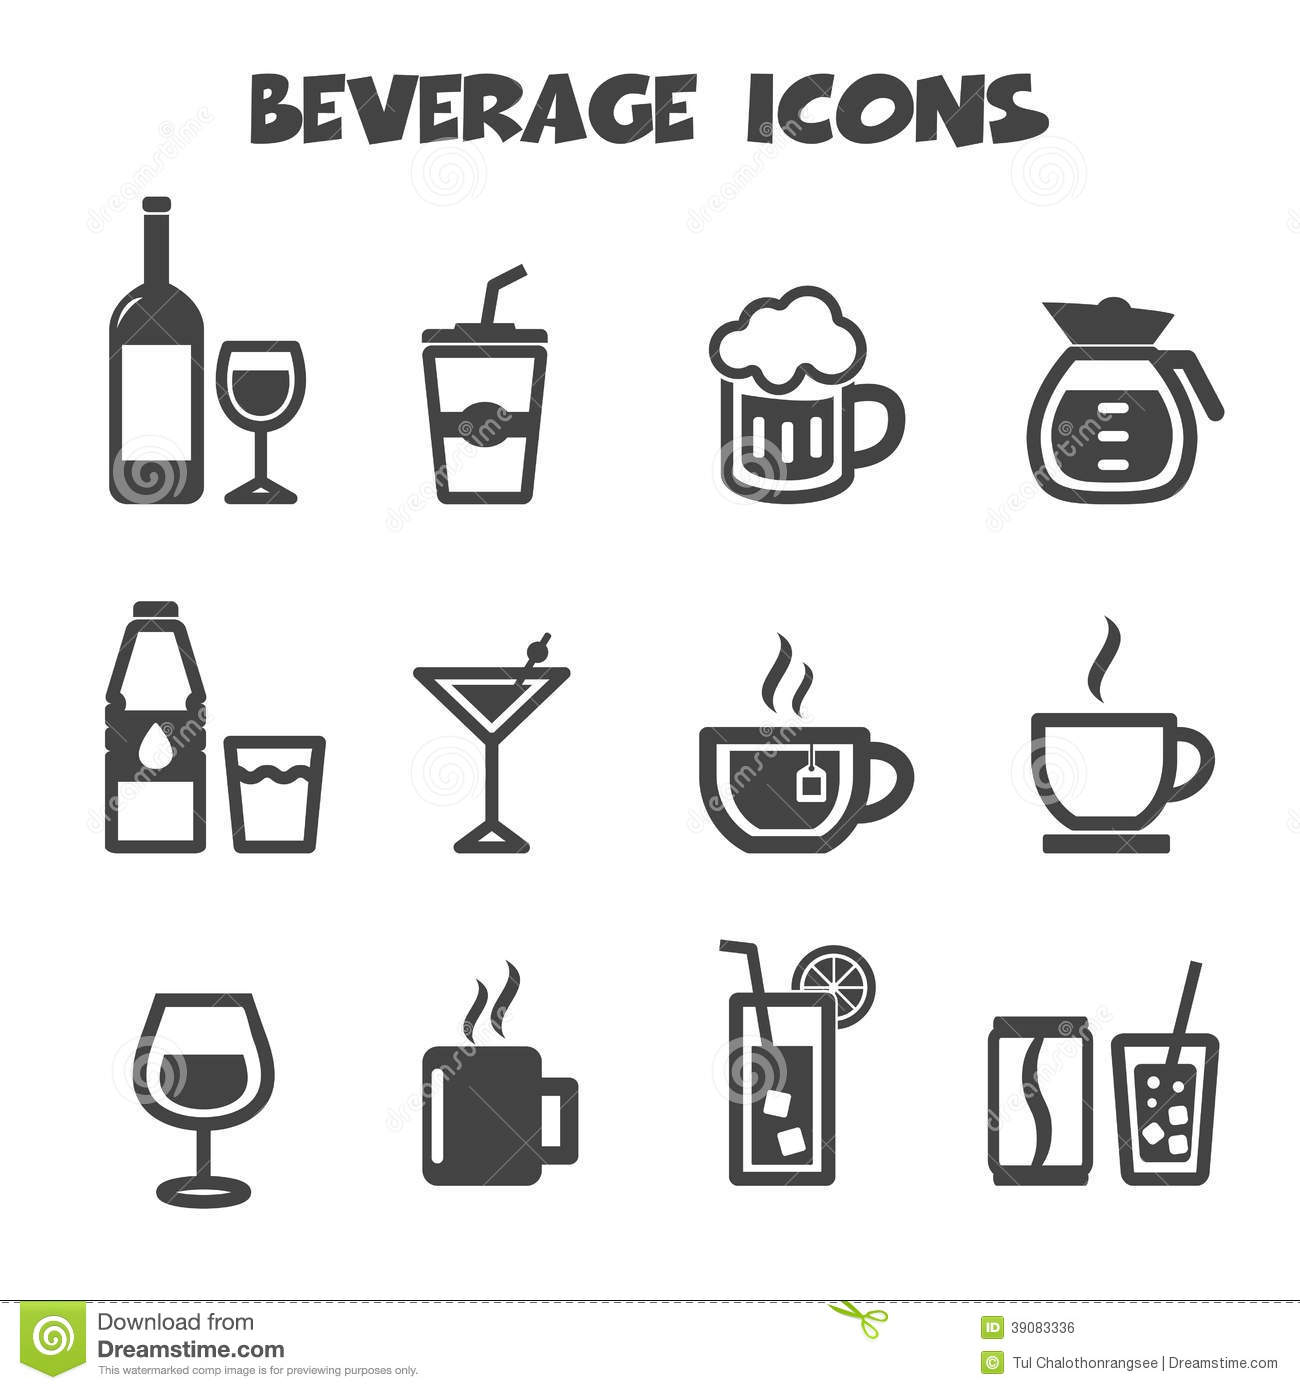 Royalty Free Stock Image Beverage Icons Mono Vector Symbols Image39083336 on cup of juice clip art